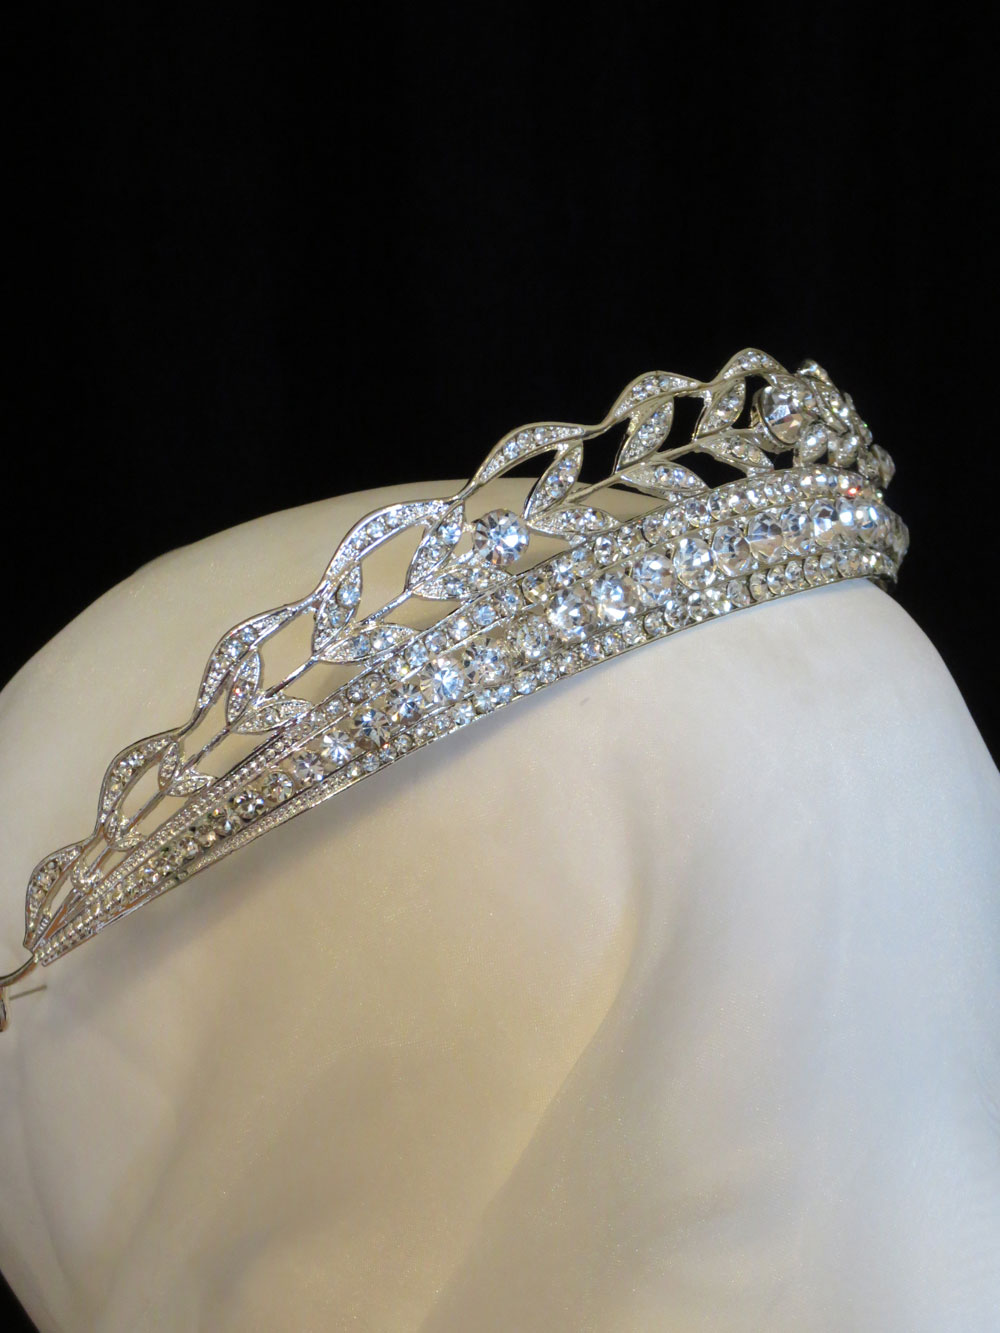 John-Zimmerman-Couture-Headpieces-and-Tiaras-Model-Chic-Gallery-Image-2